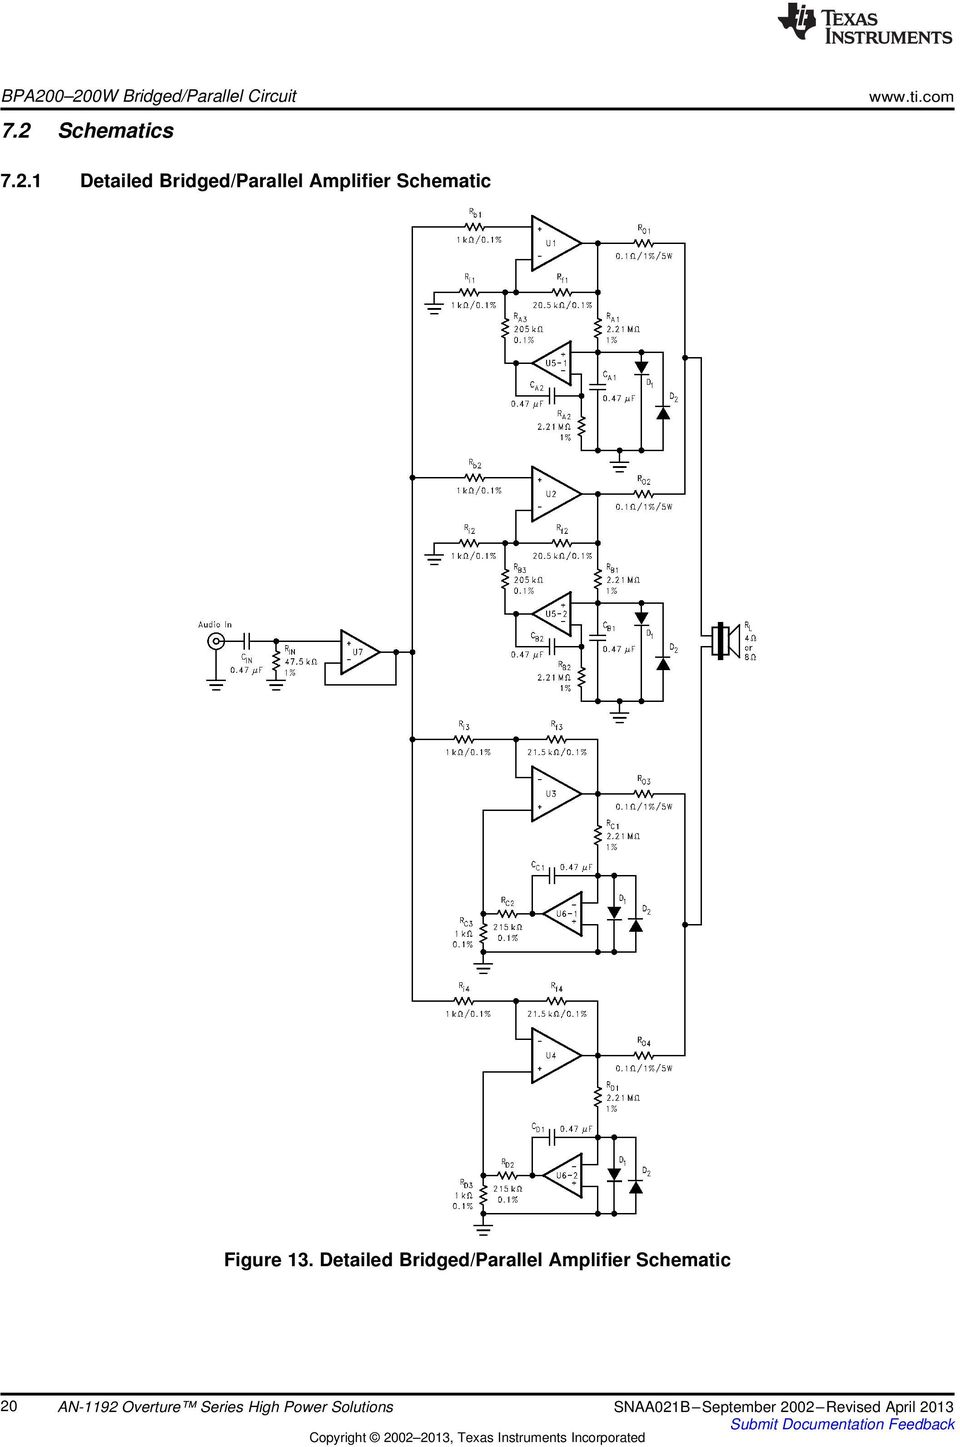 Bridged/Parallel Amplifier Schematic Figure